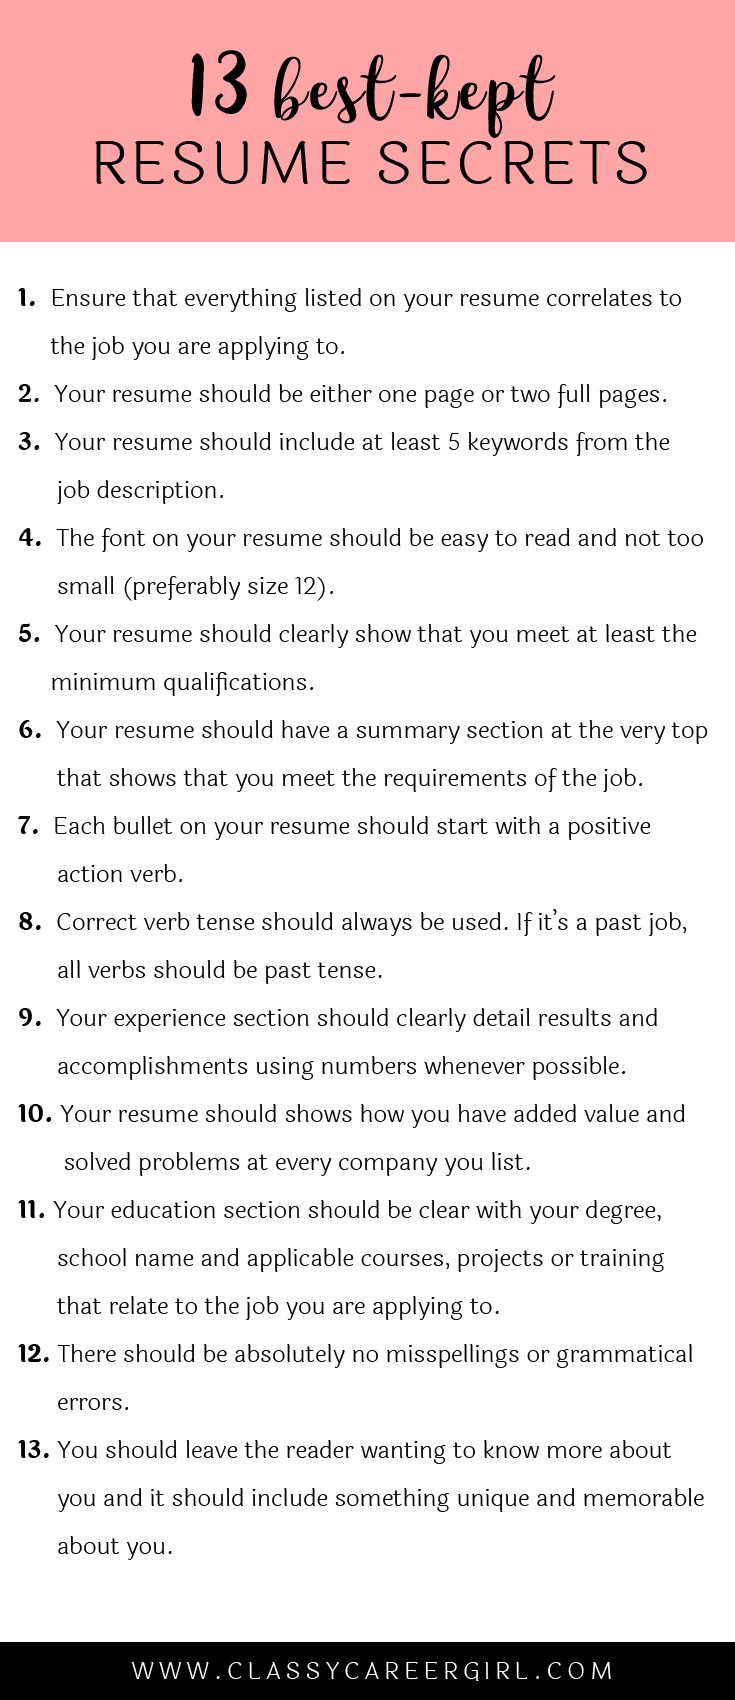 Opposenewapstandardsus  Inspiring  Ideas About Resume On Pinterest  Cv Format Resume Cv And  With Great Some Hiring Managers Will Toss Your Resume Out If You Dont Know These  With Captivating Combination Resume Template Word Also Lpn Resume Examples In Addition Internship Objective Resume And College Application Resume Examples As Well As Beautiful Resume Templates Additionally How Can I Make A Resume From Pinterestcom With Opposenewapstandardsus  Great  Ideas About Resume On Pinterest  Cv Format Resume Cv And  With Captivating Some Hiring Managers Will Toss Your Resume Out If You Dont Know These  And Inspiring Combination Resume Template Word Also Lpn Resume Examples In Addition Internship Objective Resume From Pinterestcom